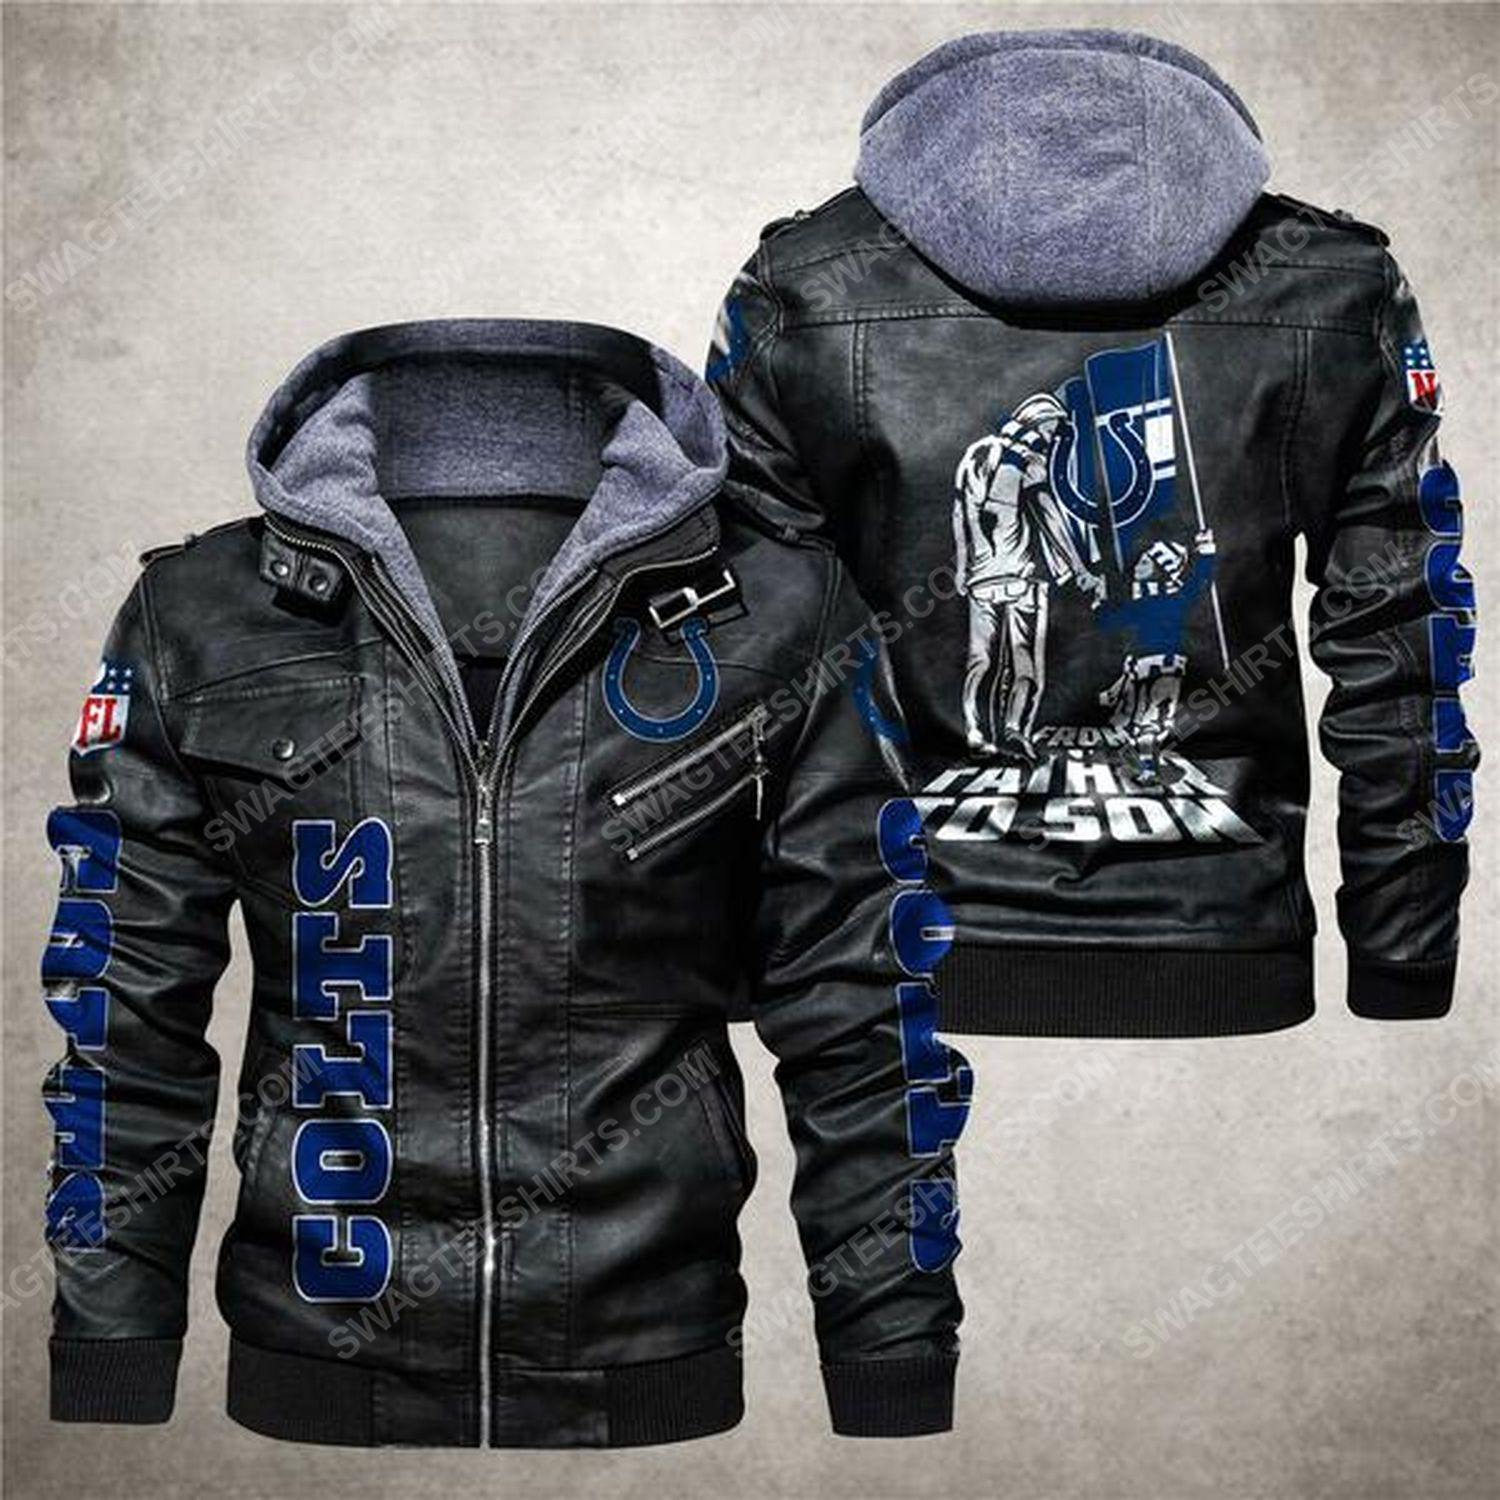 National football league indianapolis colts from father to son leather jacket - black